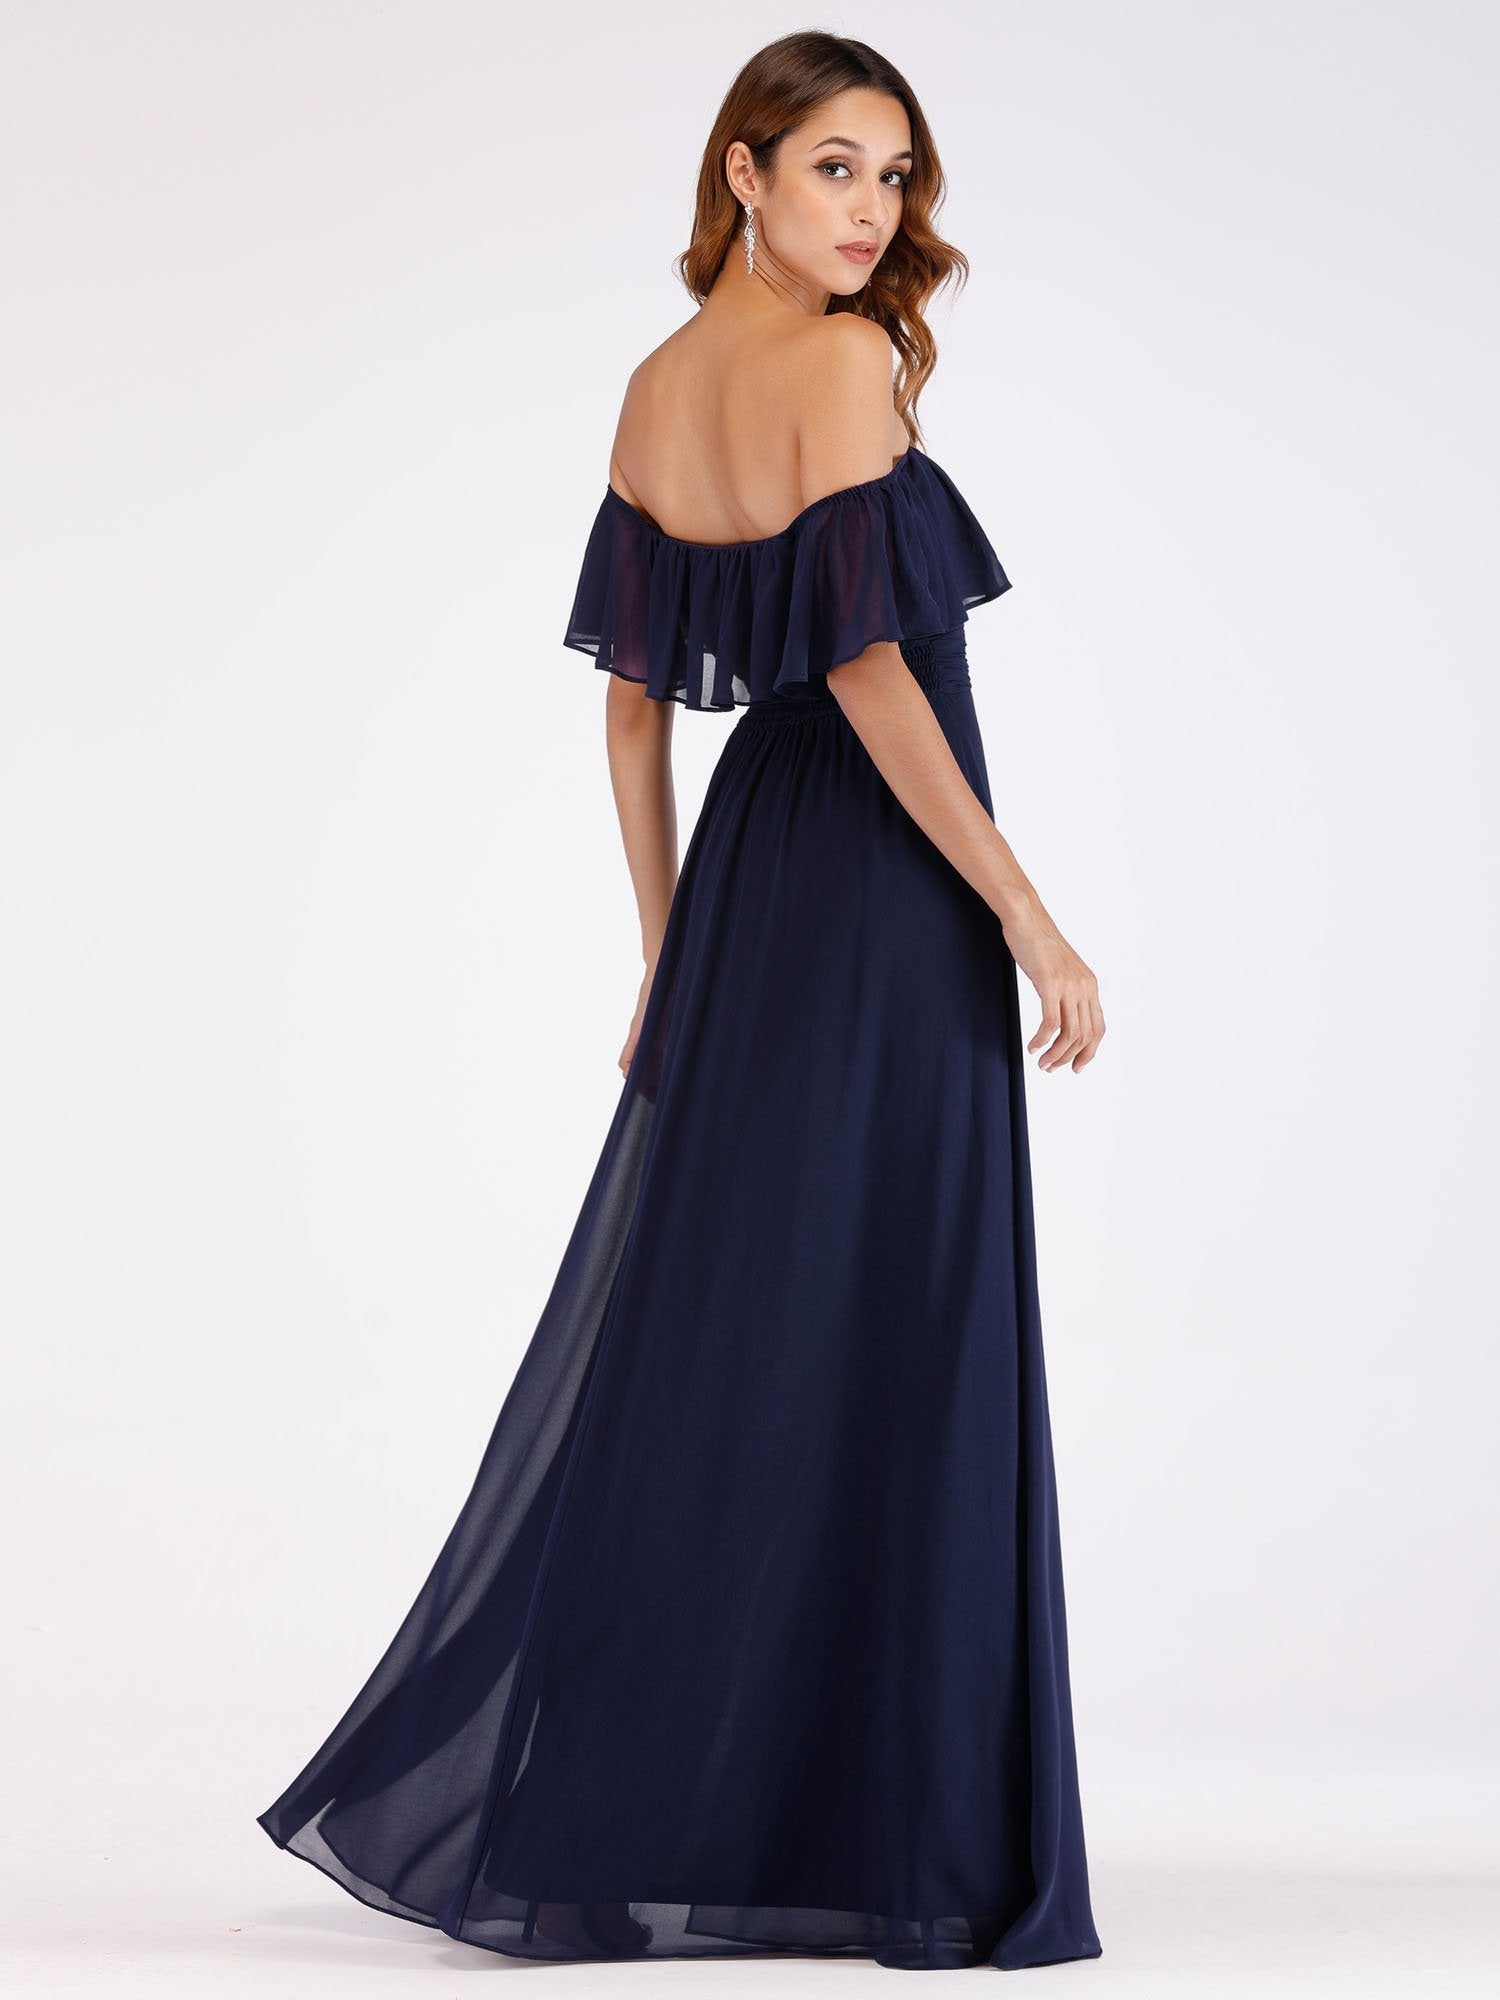 Angelina off shoulder bridesmaid dress with split in navy blue s22-Bay Bridesmaid